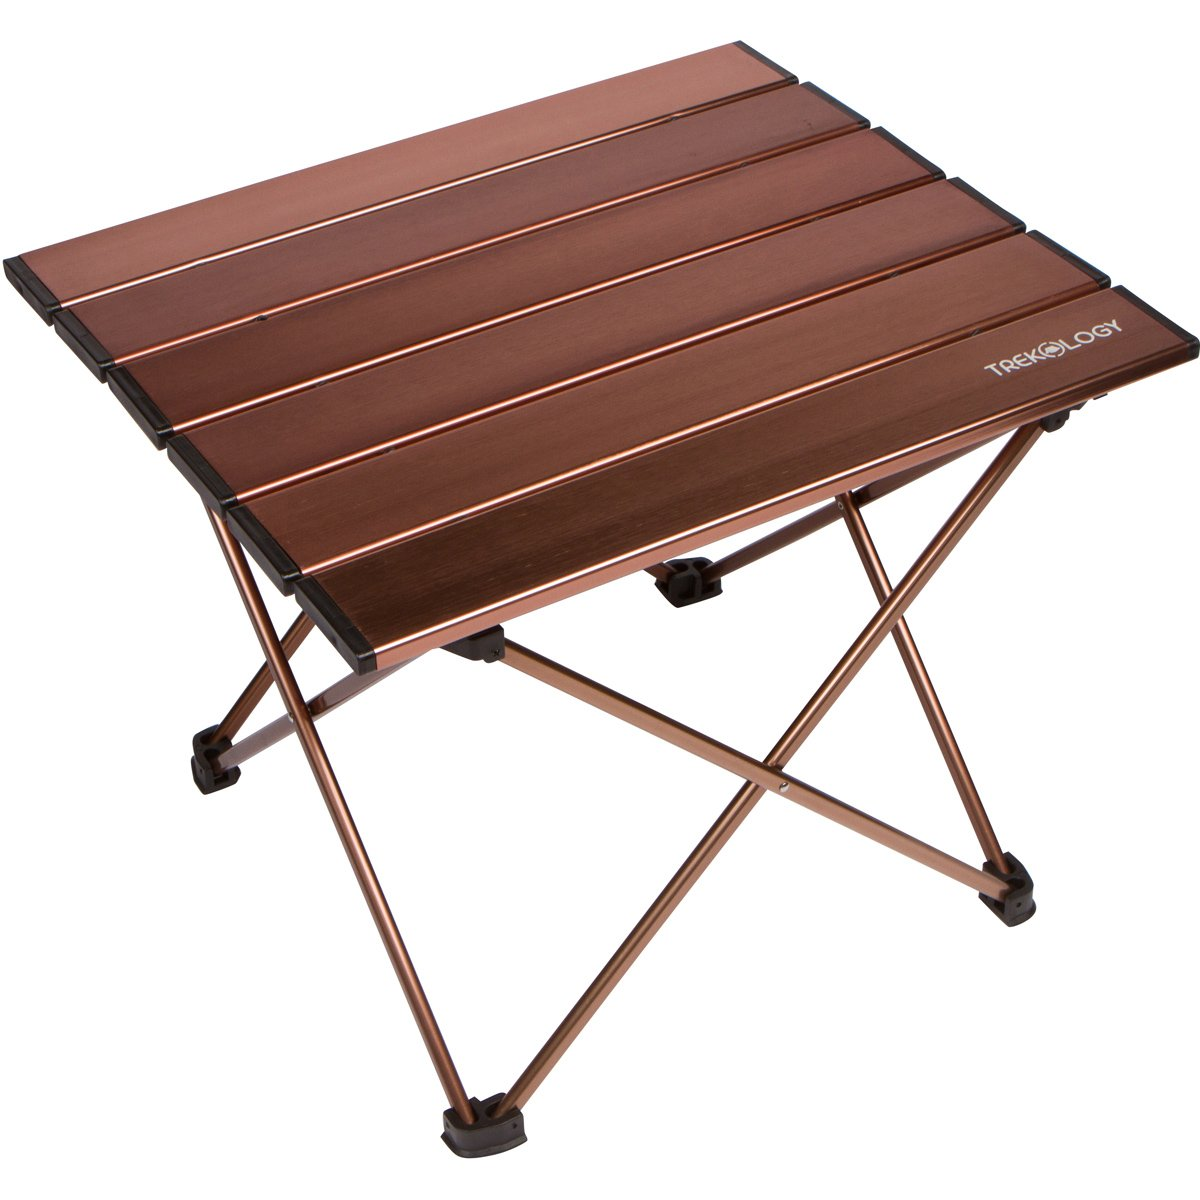 Trekology Portable Camping Side Tables with Aluminum Table Top: Hard-Topped Folding Table in a Bag for Picnic, Camp, Beach, Boat, Useful for Dining & Cooking with Burner, Easy to Clean by Trekology